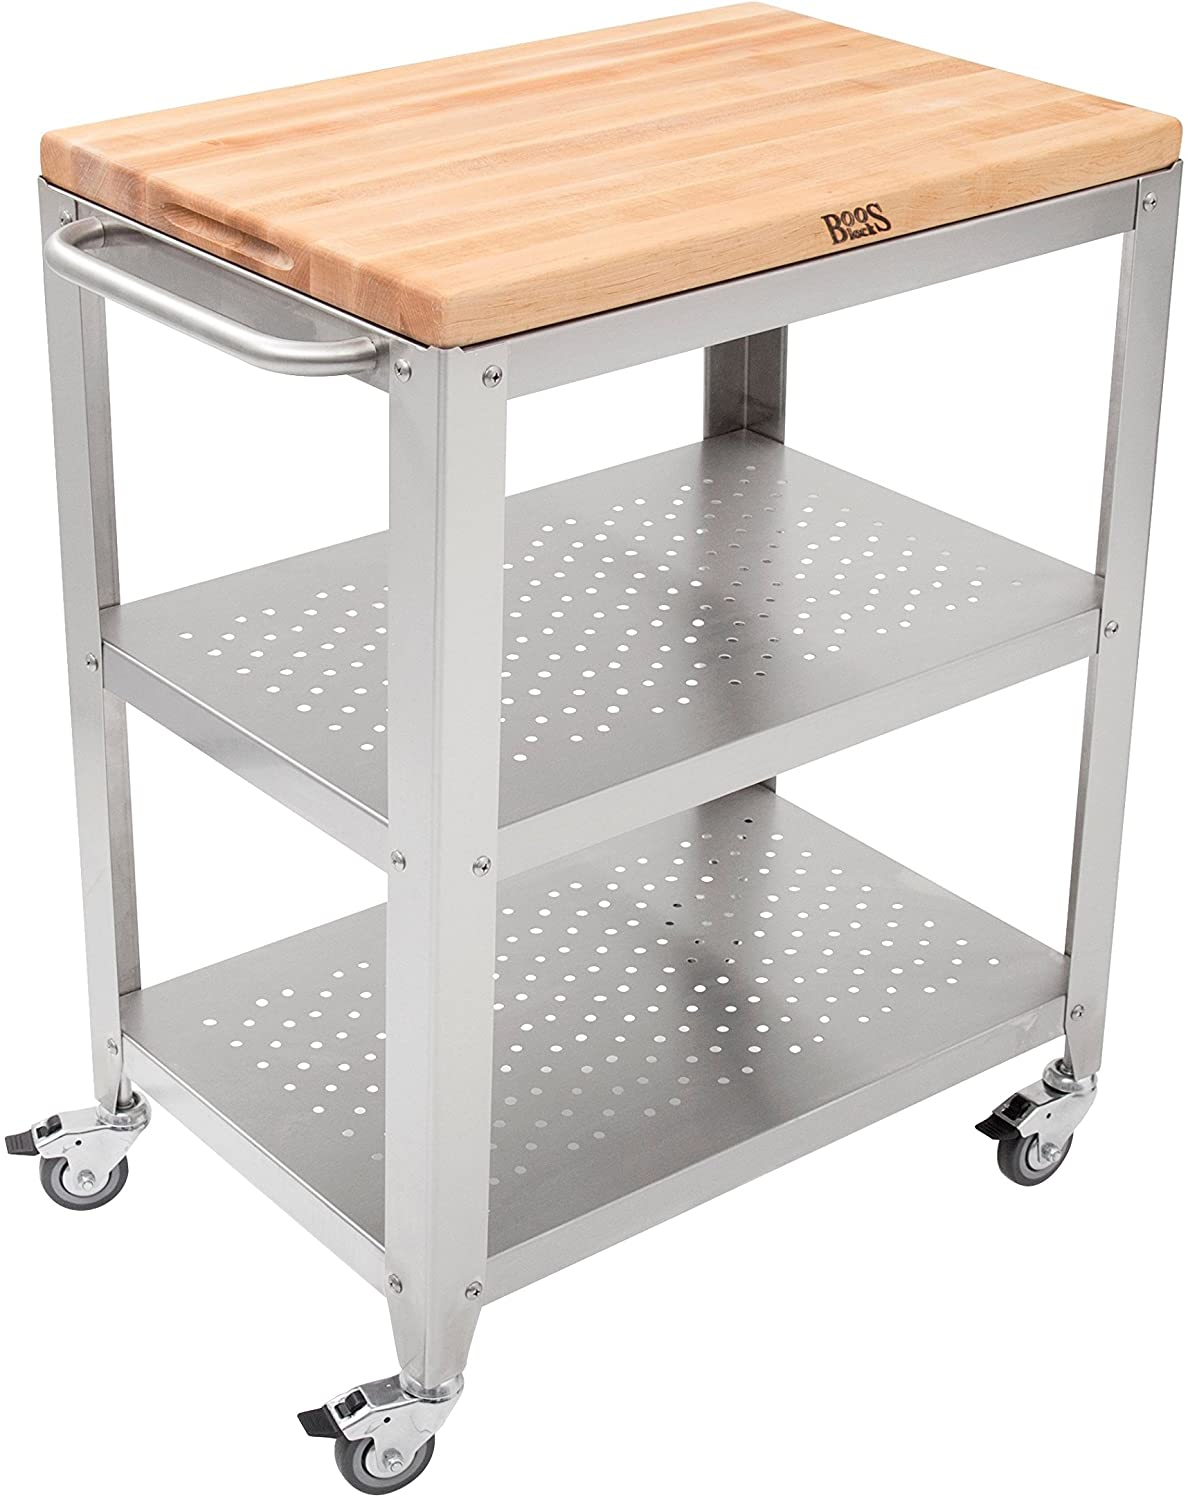 John Boos Block Culinarte Stainless Steel Kitchen Cart With 30 By 20 Inch Removable Maple Cutting Board Top Stainless Steel Shelves And Casters Kitchen Islands Carts